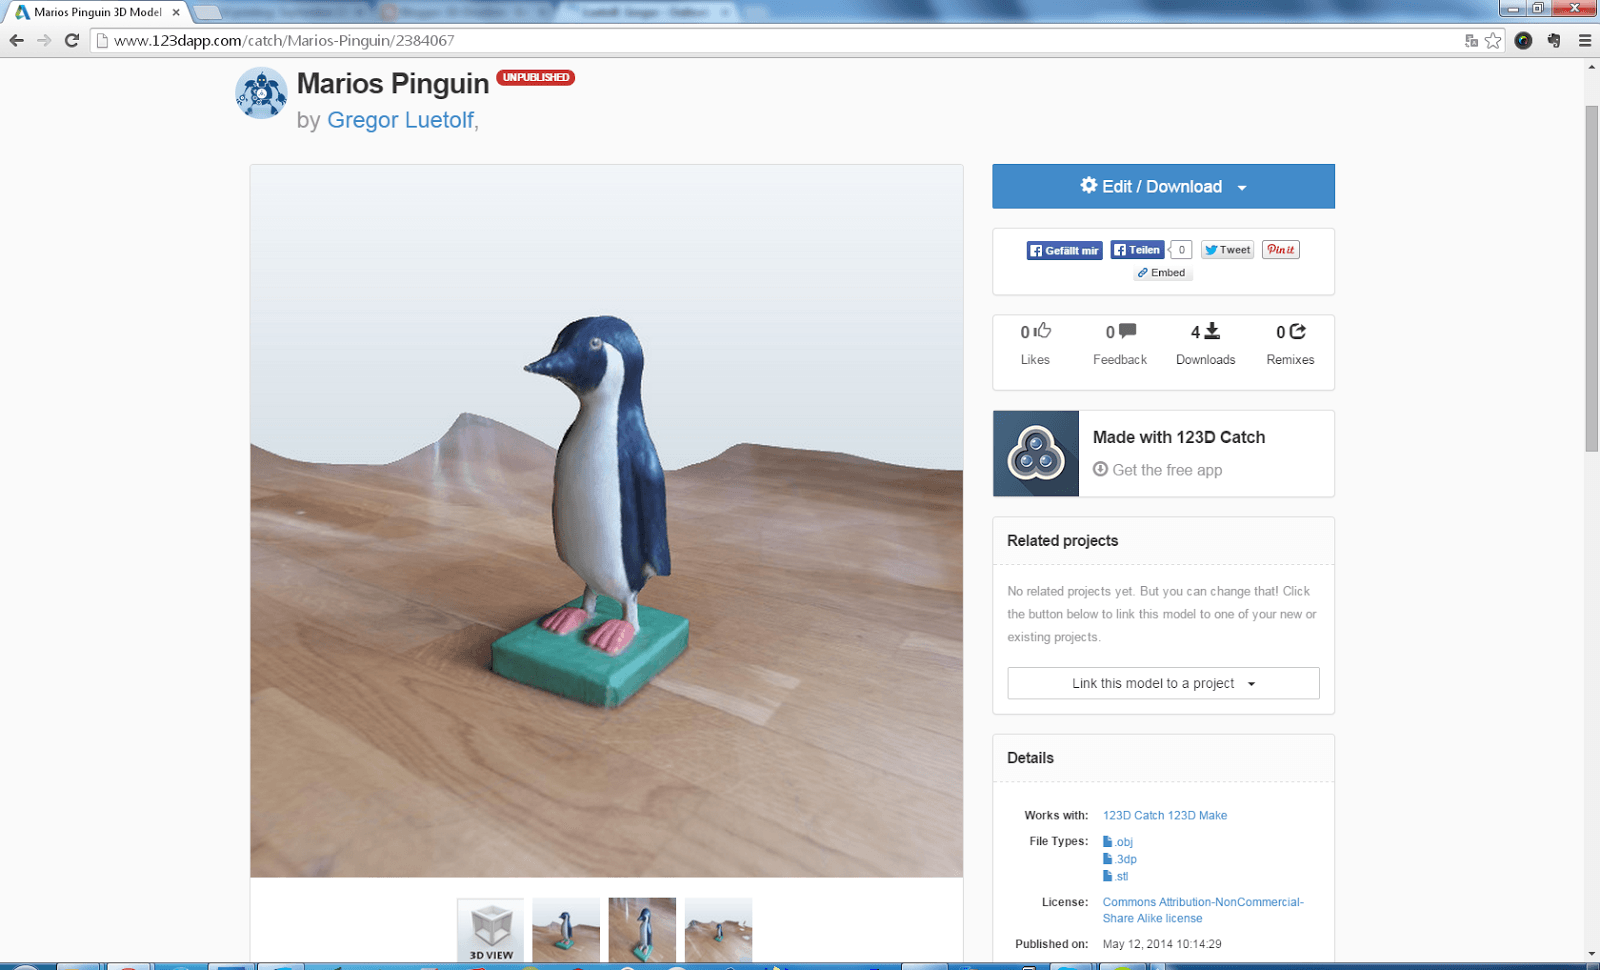 Screenshot des Pinguin-Modells von der 123D Catch Website